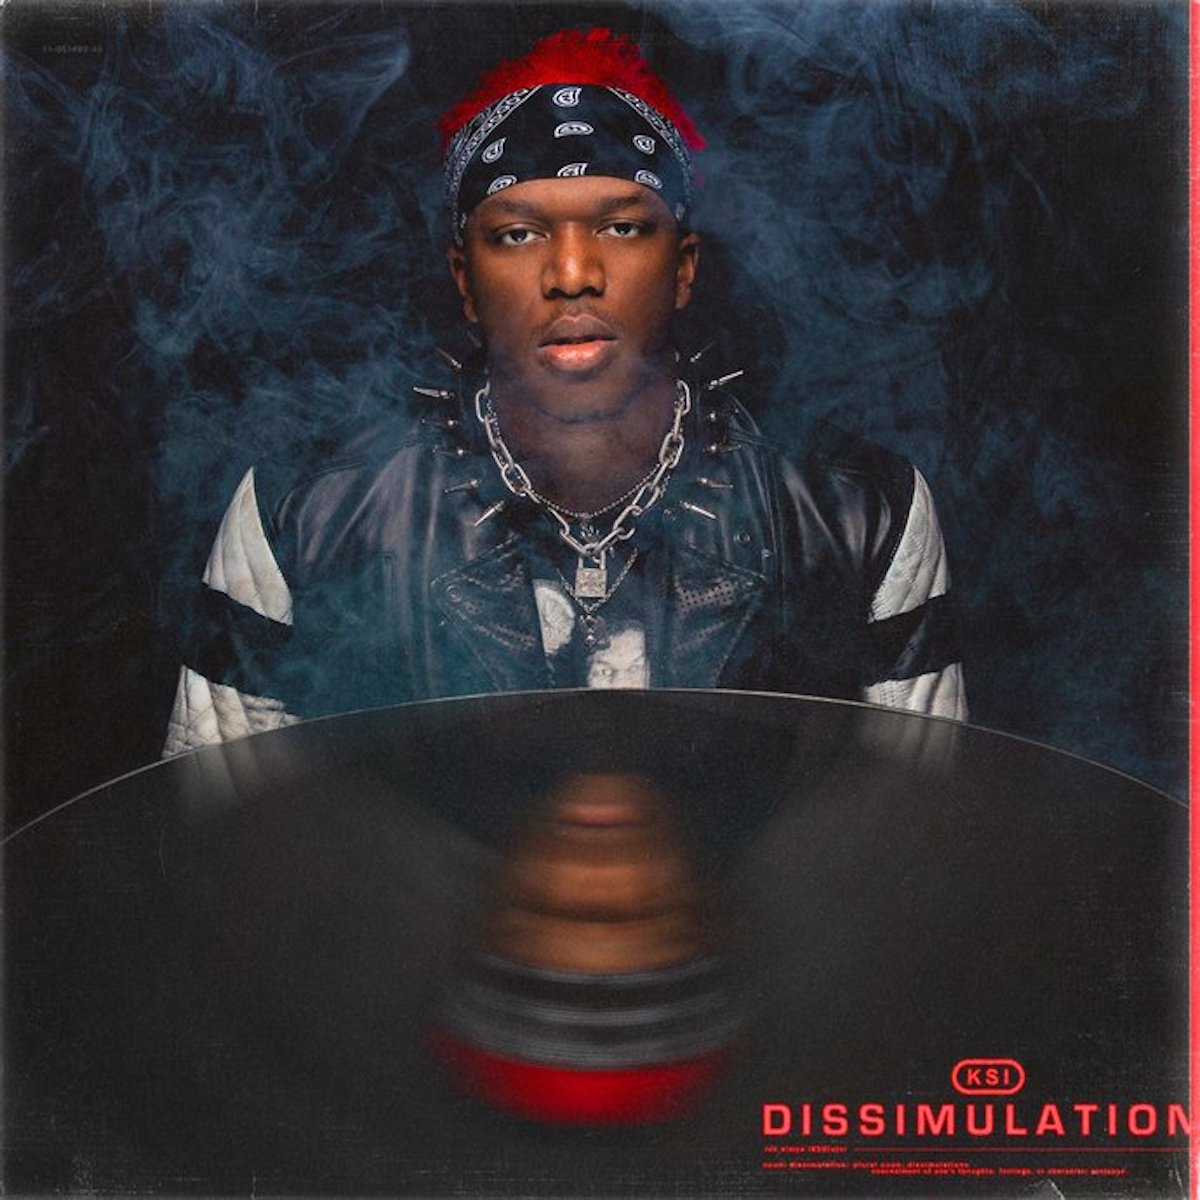 Cover art for KSI's album Dissimulation